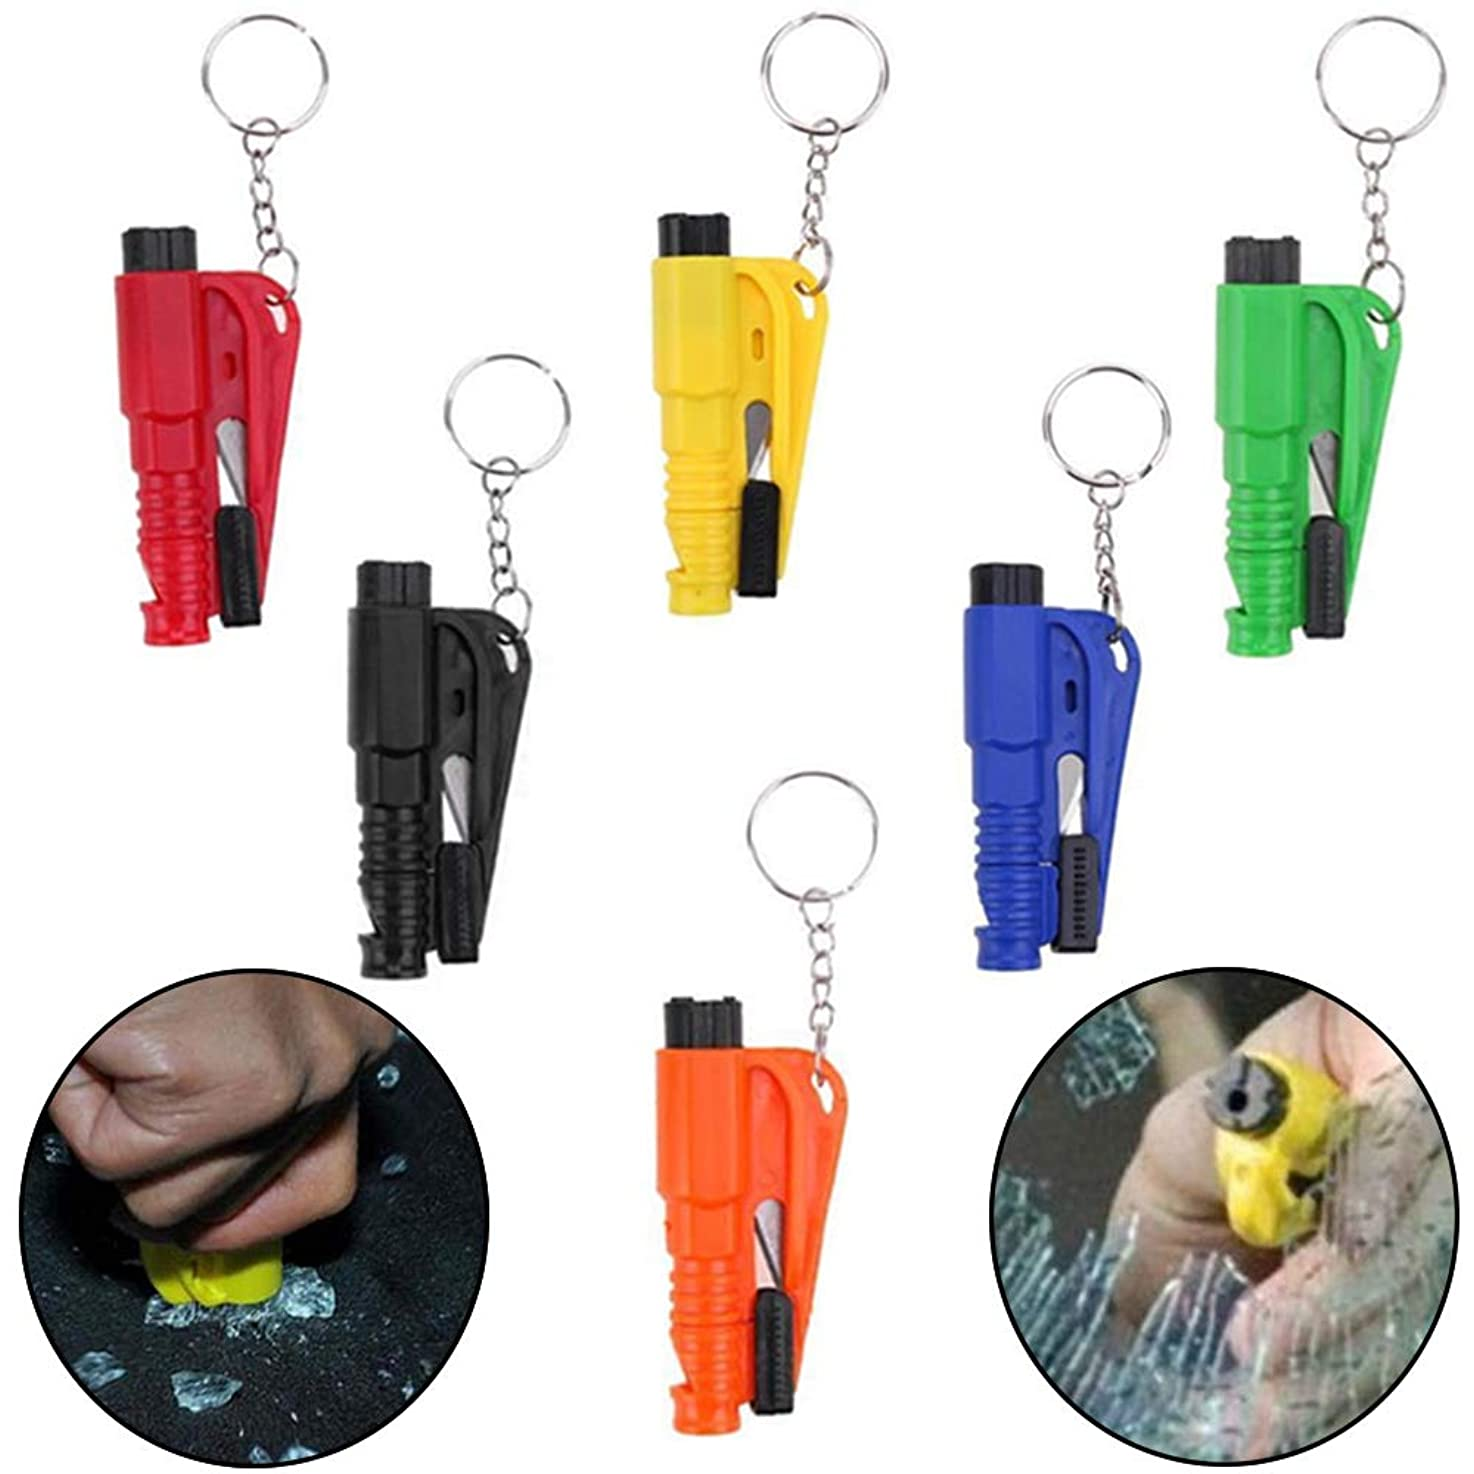 3 in 1 Car Emergency Escape Rescue Tool,Safety Hammer Belt Cutter Glass Window Breaker with Keychain Whistle Seat Belt Cutter (Red)